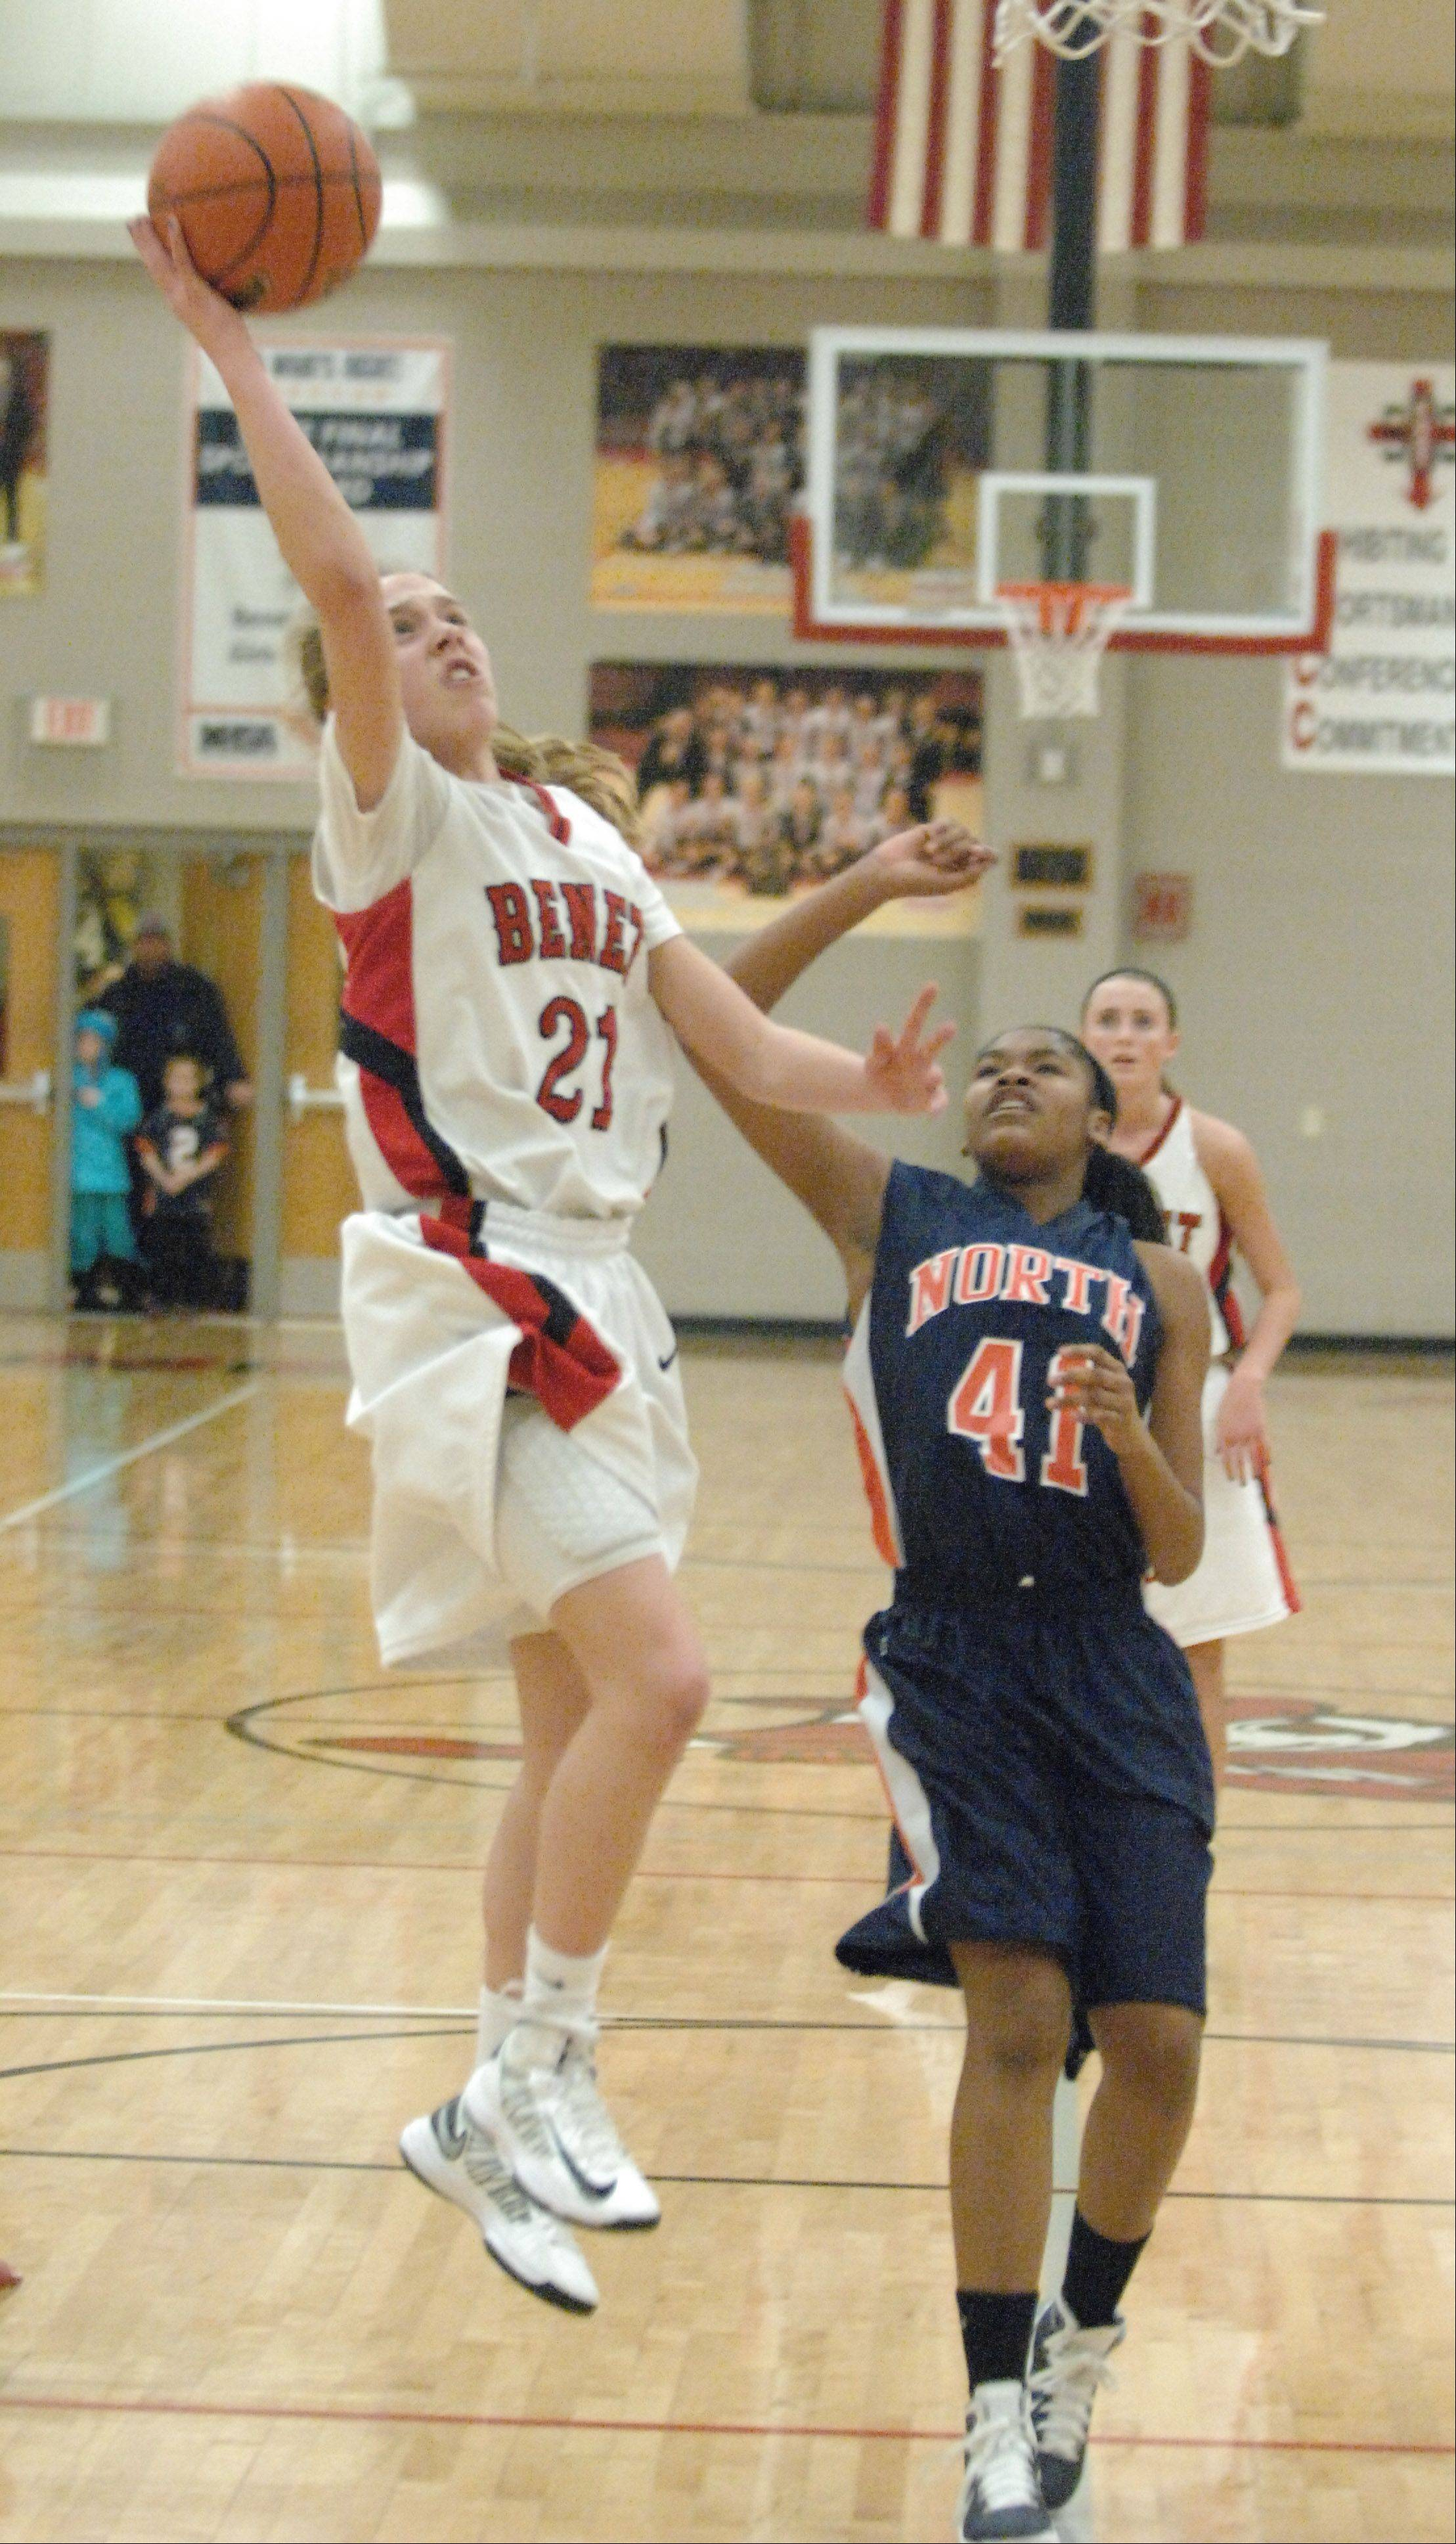 Kathleen Doyle of Benet, left, puts up a shot while Cece Pope of Naperville North blocks.